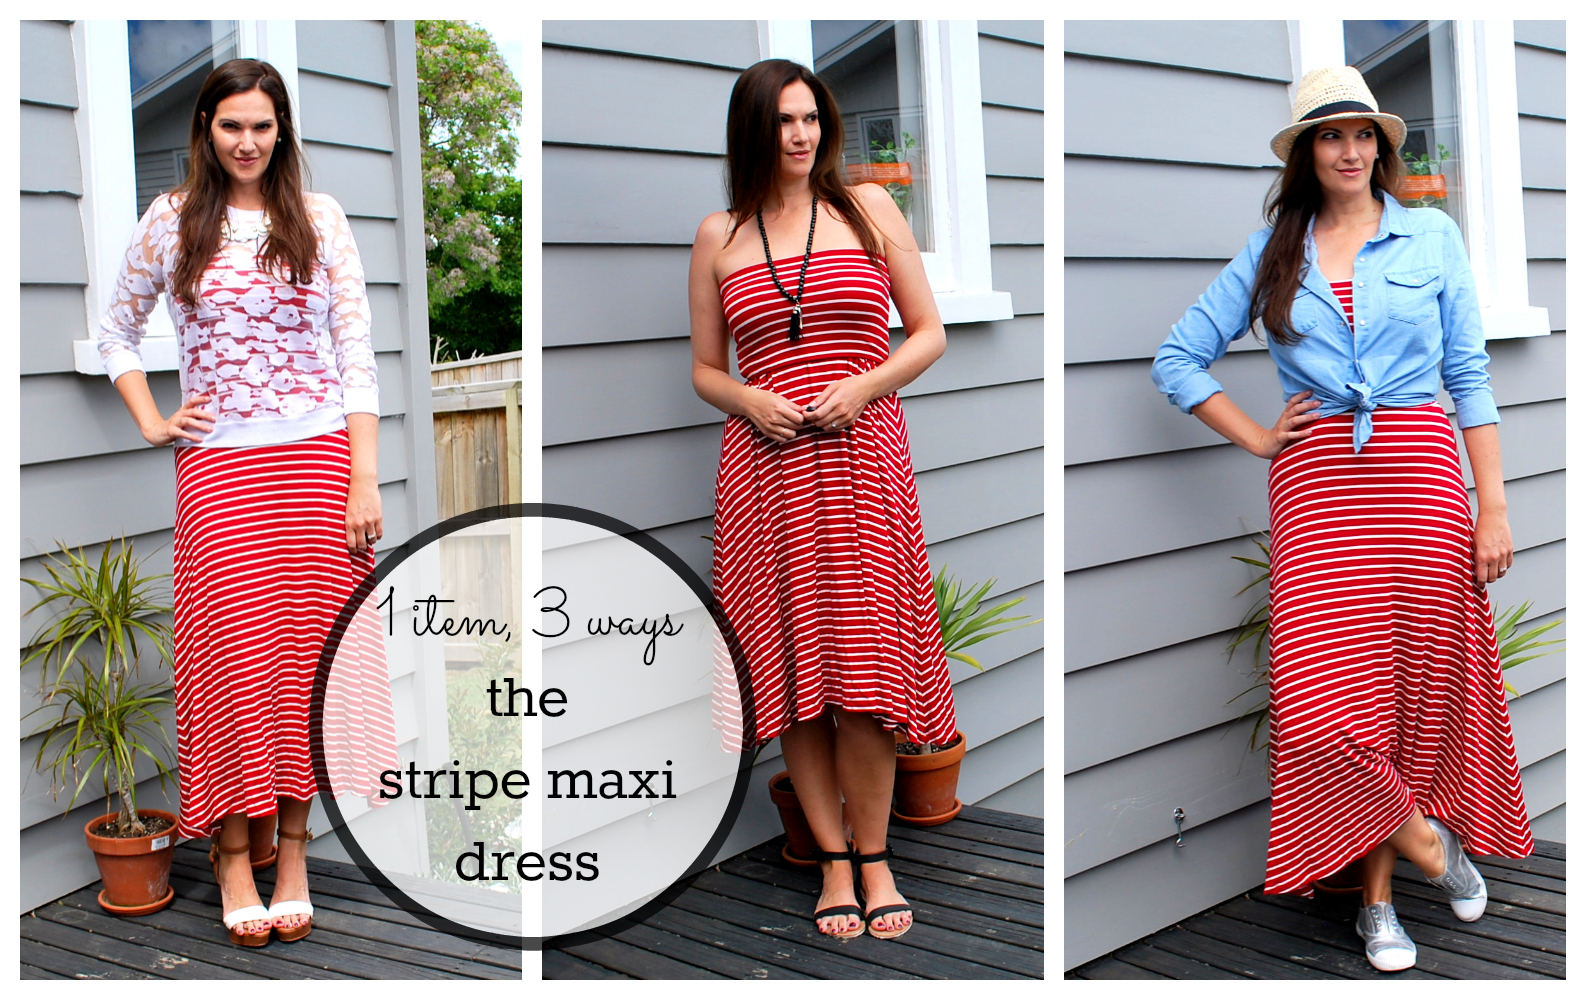 {The Stripe Maxi Dress} one item, three ways